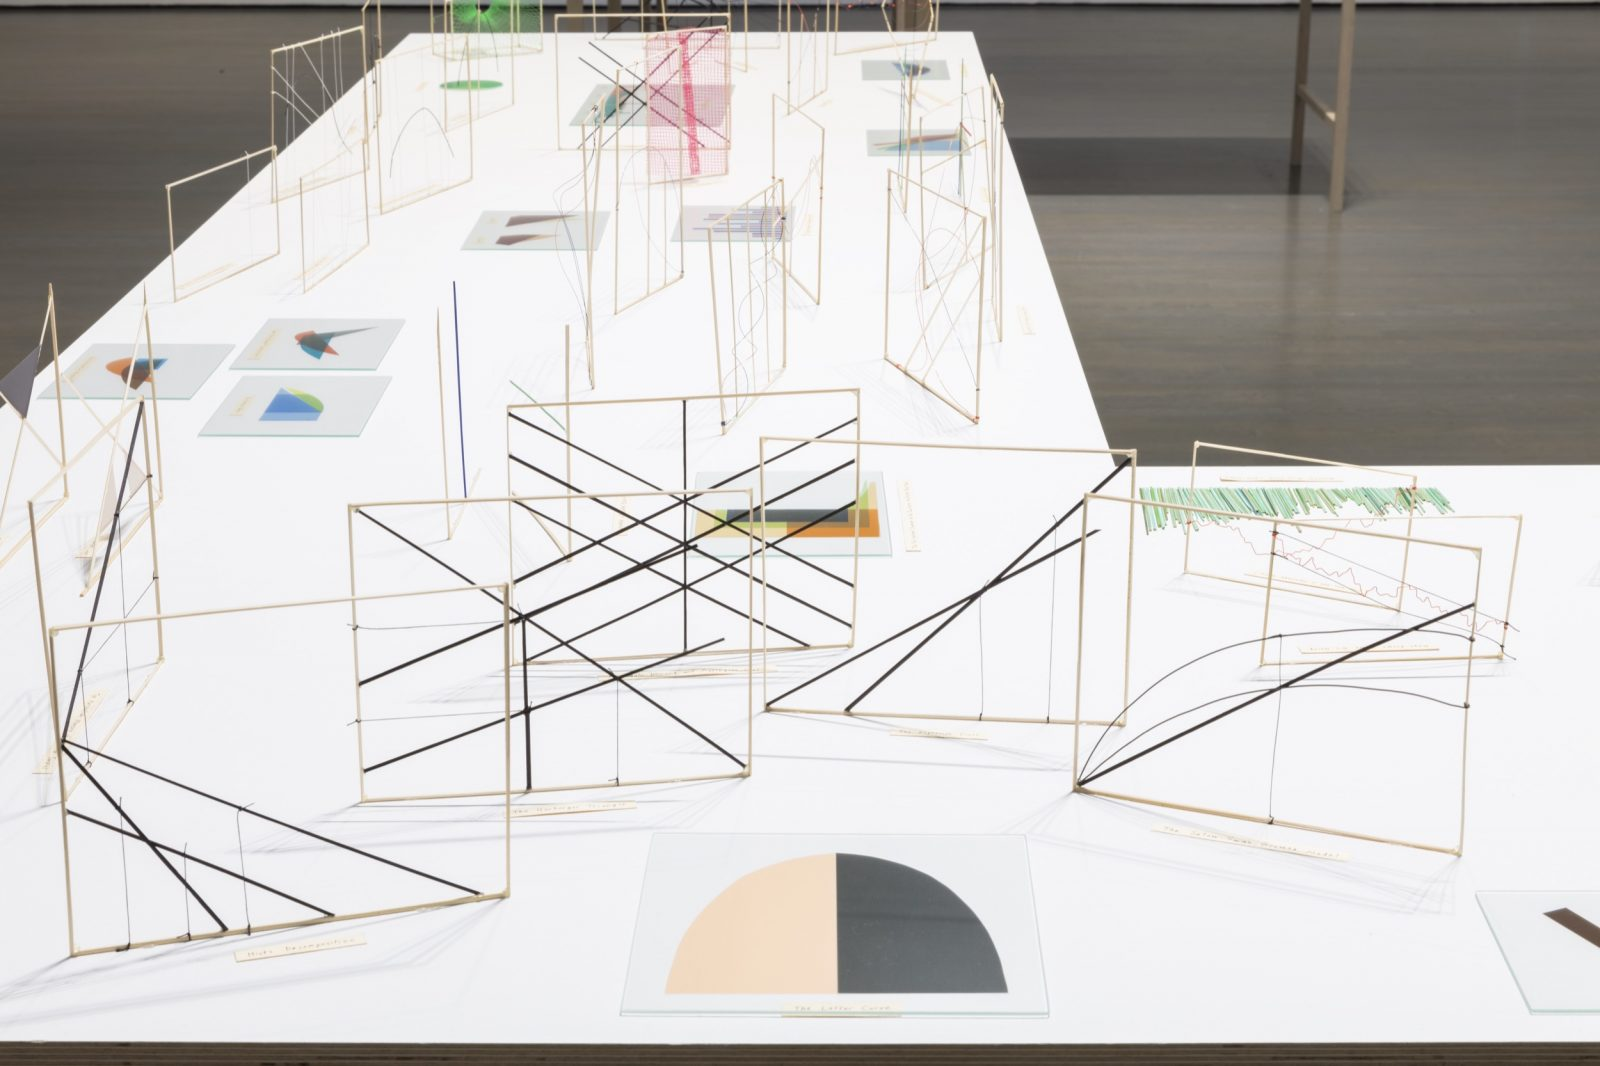 The Prophets Mac Montral Prophet Wiring Diagram Richard Ibghy And Marilou Lemmens 2013 2015 Installation View Muse Dart Contemporain De 2018 412 Elements Assorted Materials